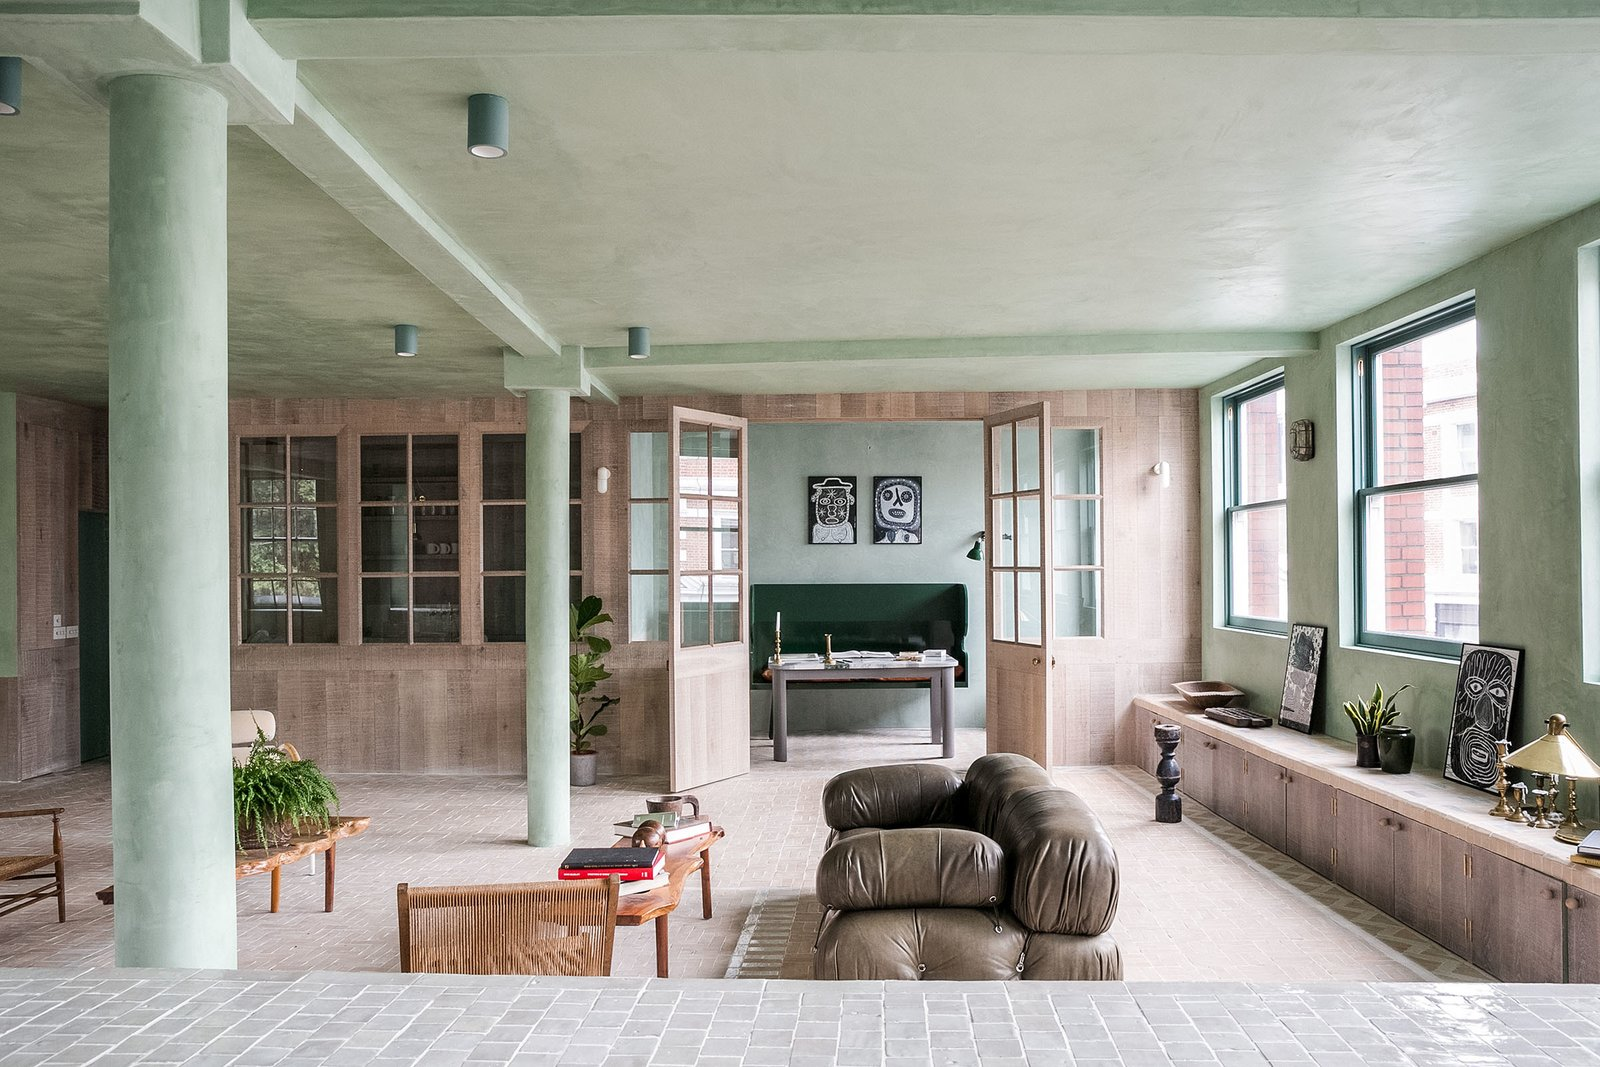 Living, Chair, Sofa, Bench, Terra-cotta Tile, and Ceiling The living space has french doors leading to a separate study.  Best Living Terra-cotta Tile Ceiling Photos from Grab This Newly Renovated, Green-Hued Abode For $4.2M